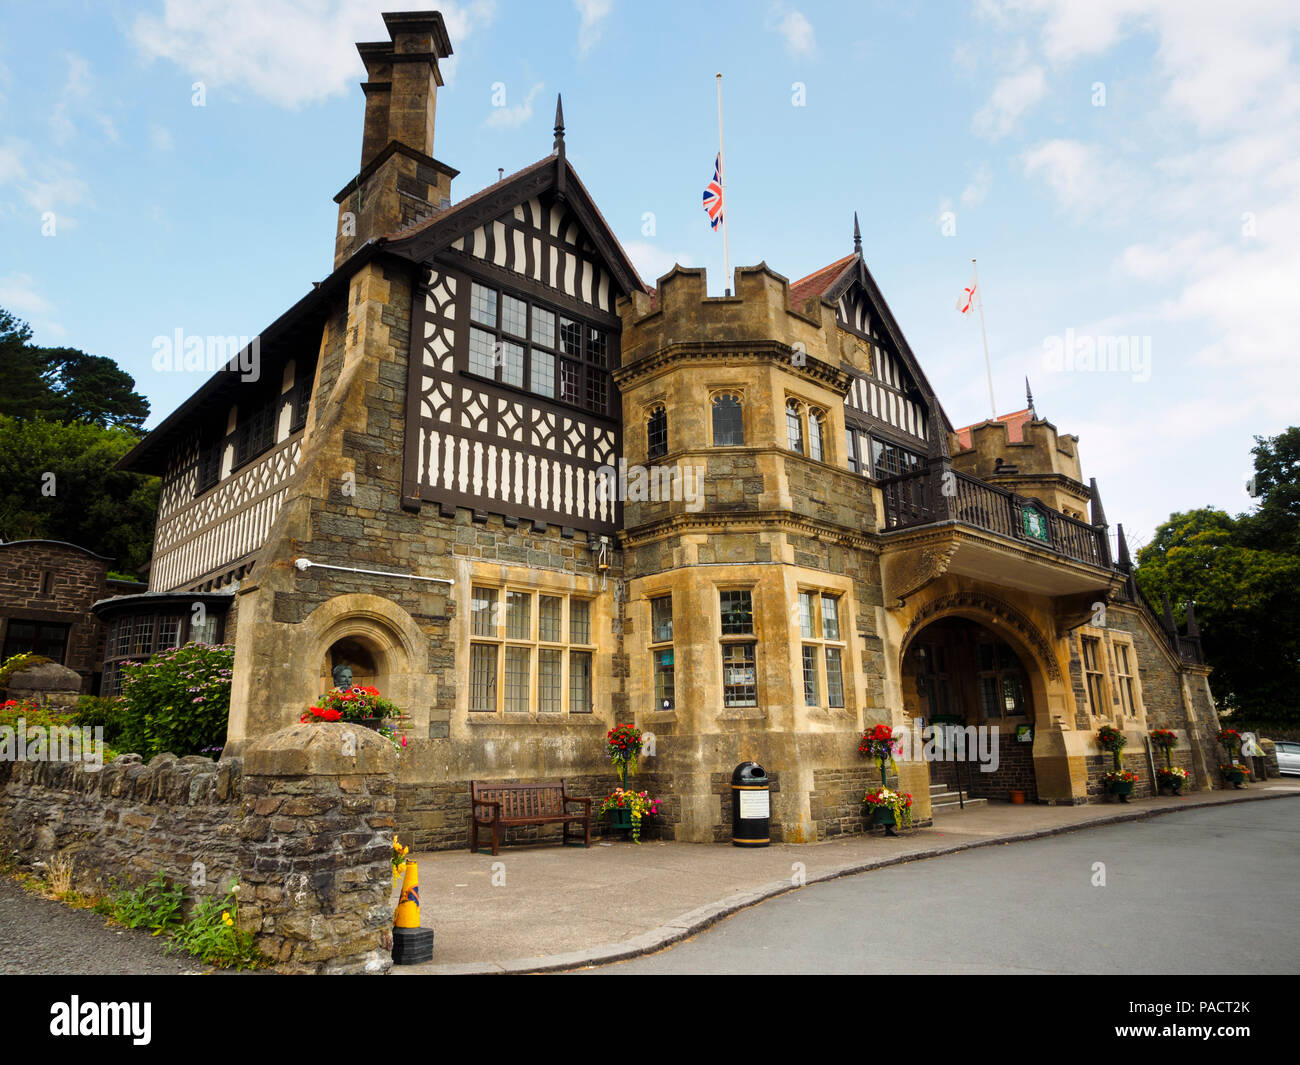 Arts and Crafts building mixing half timbered and stonework construction of Lynton town hall, Devon, UK - Stock Image